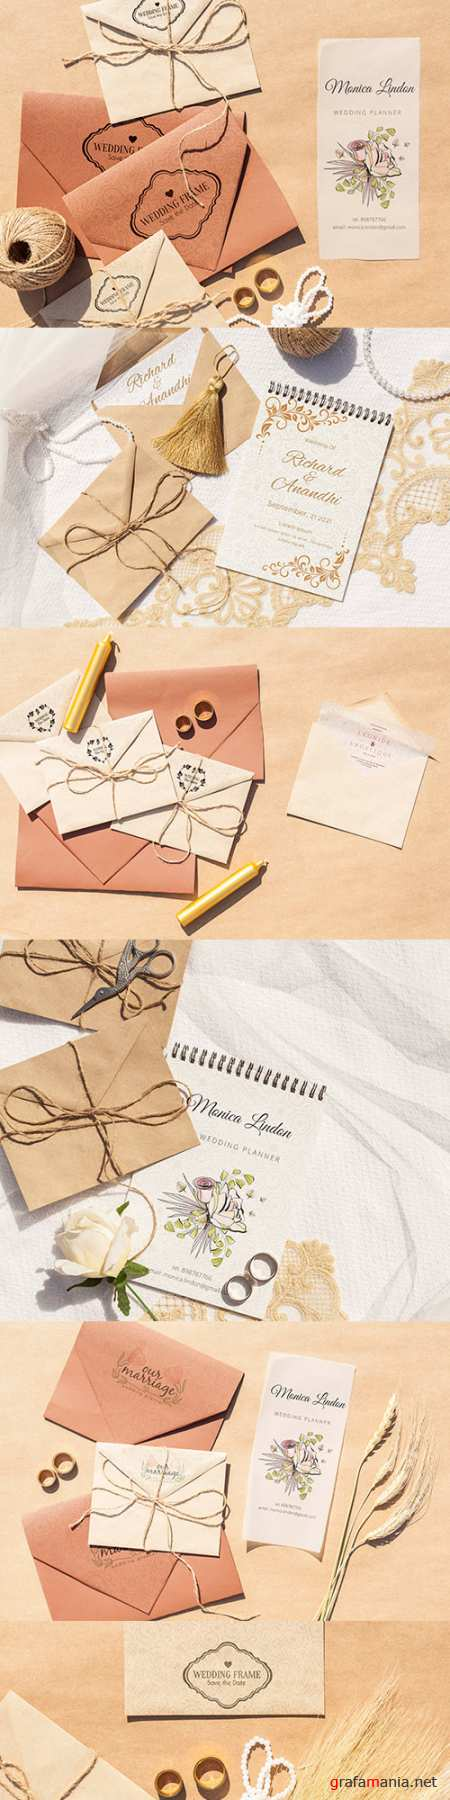 Vintage wedding invitations with brown paper envelopes